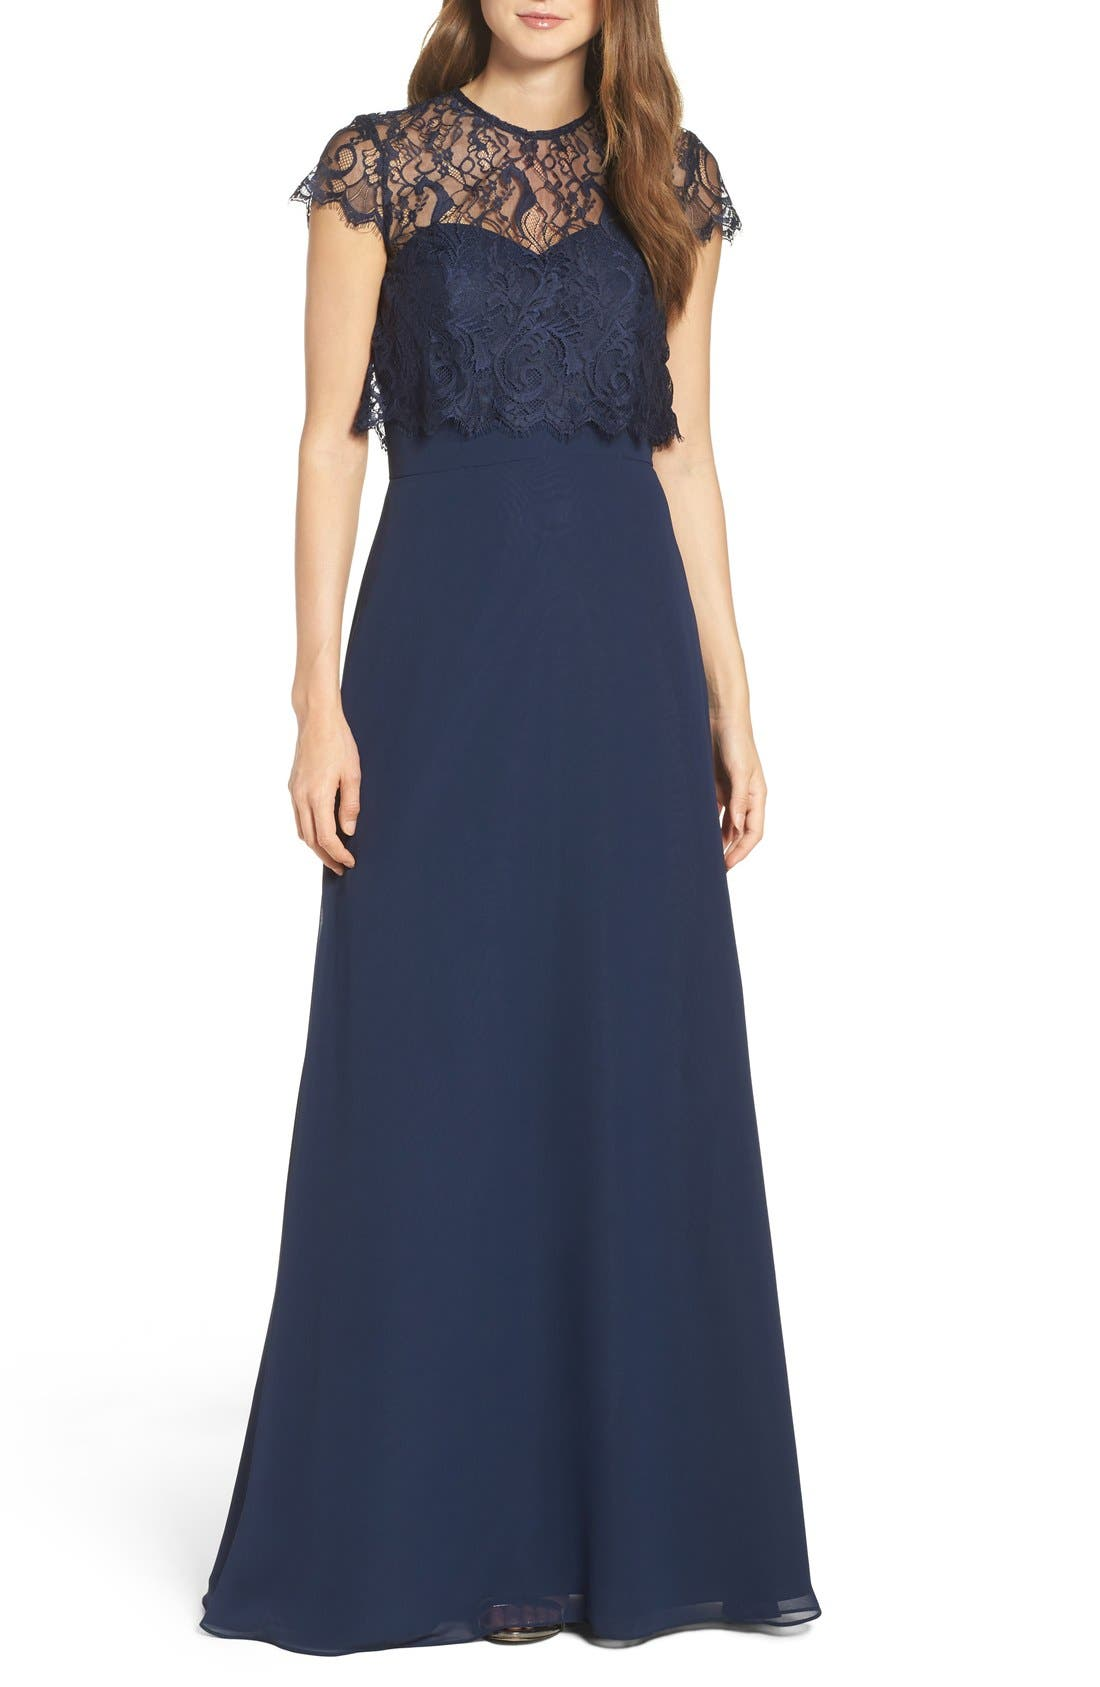 Main Image - Hayley Paige Occasions Strapless Chiffon A-Line Gown with Removable Lace Overlay